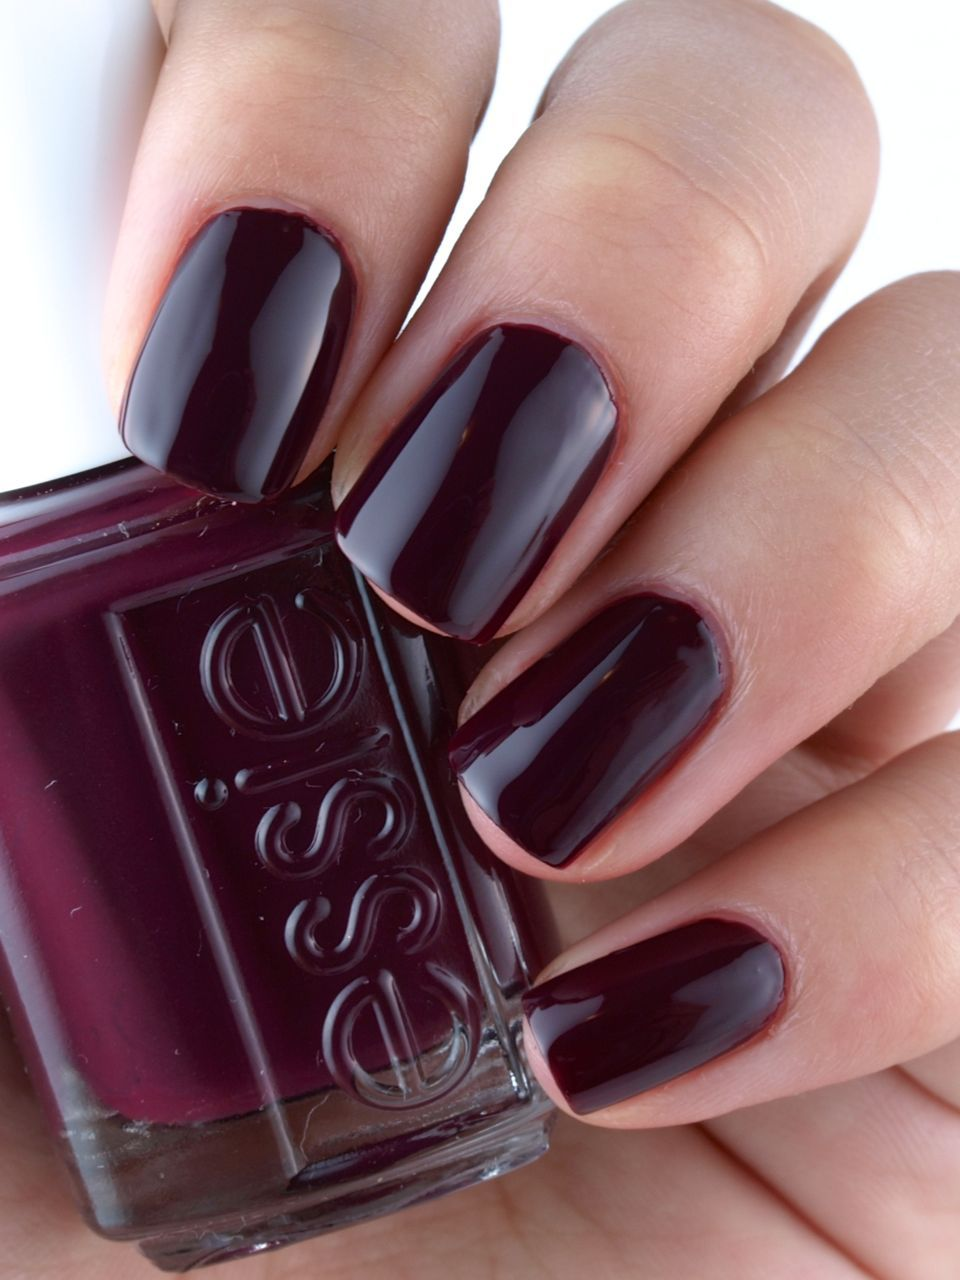 Essie In The Lobby Fall 2015 Collection: Review and Swatches ...